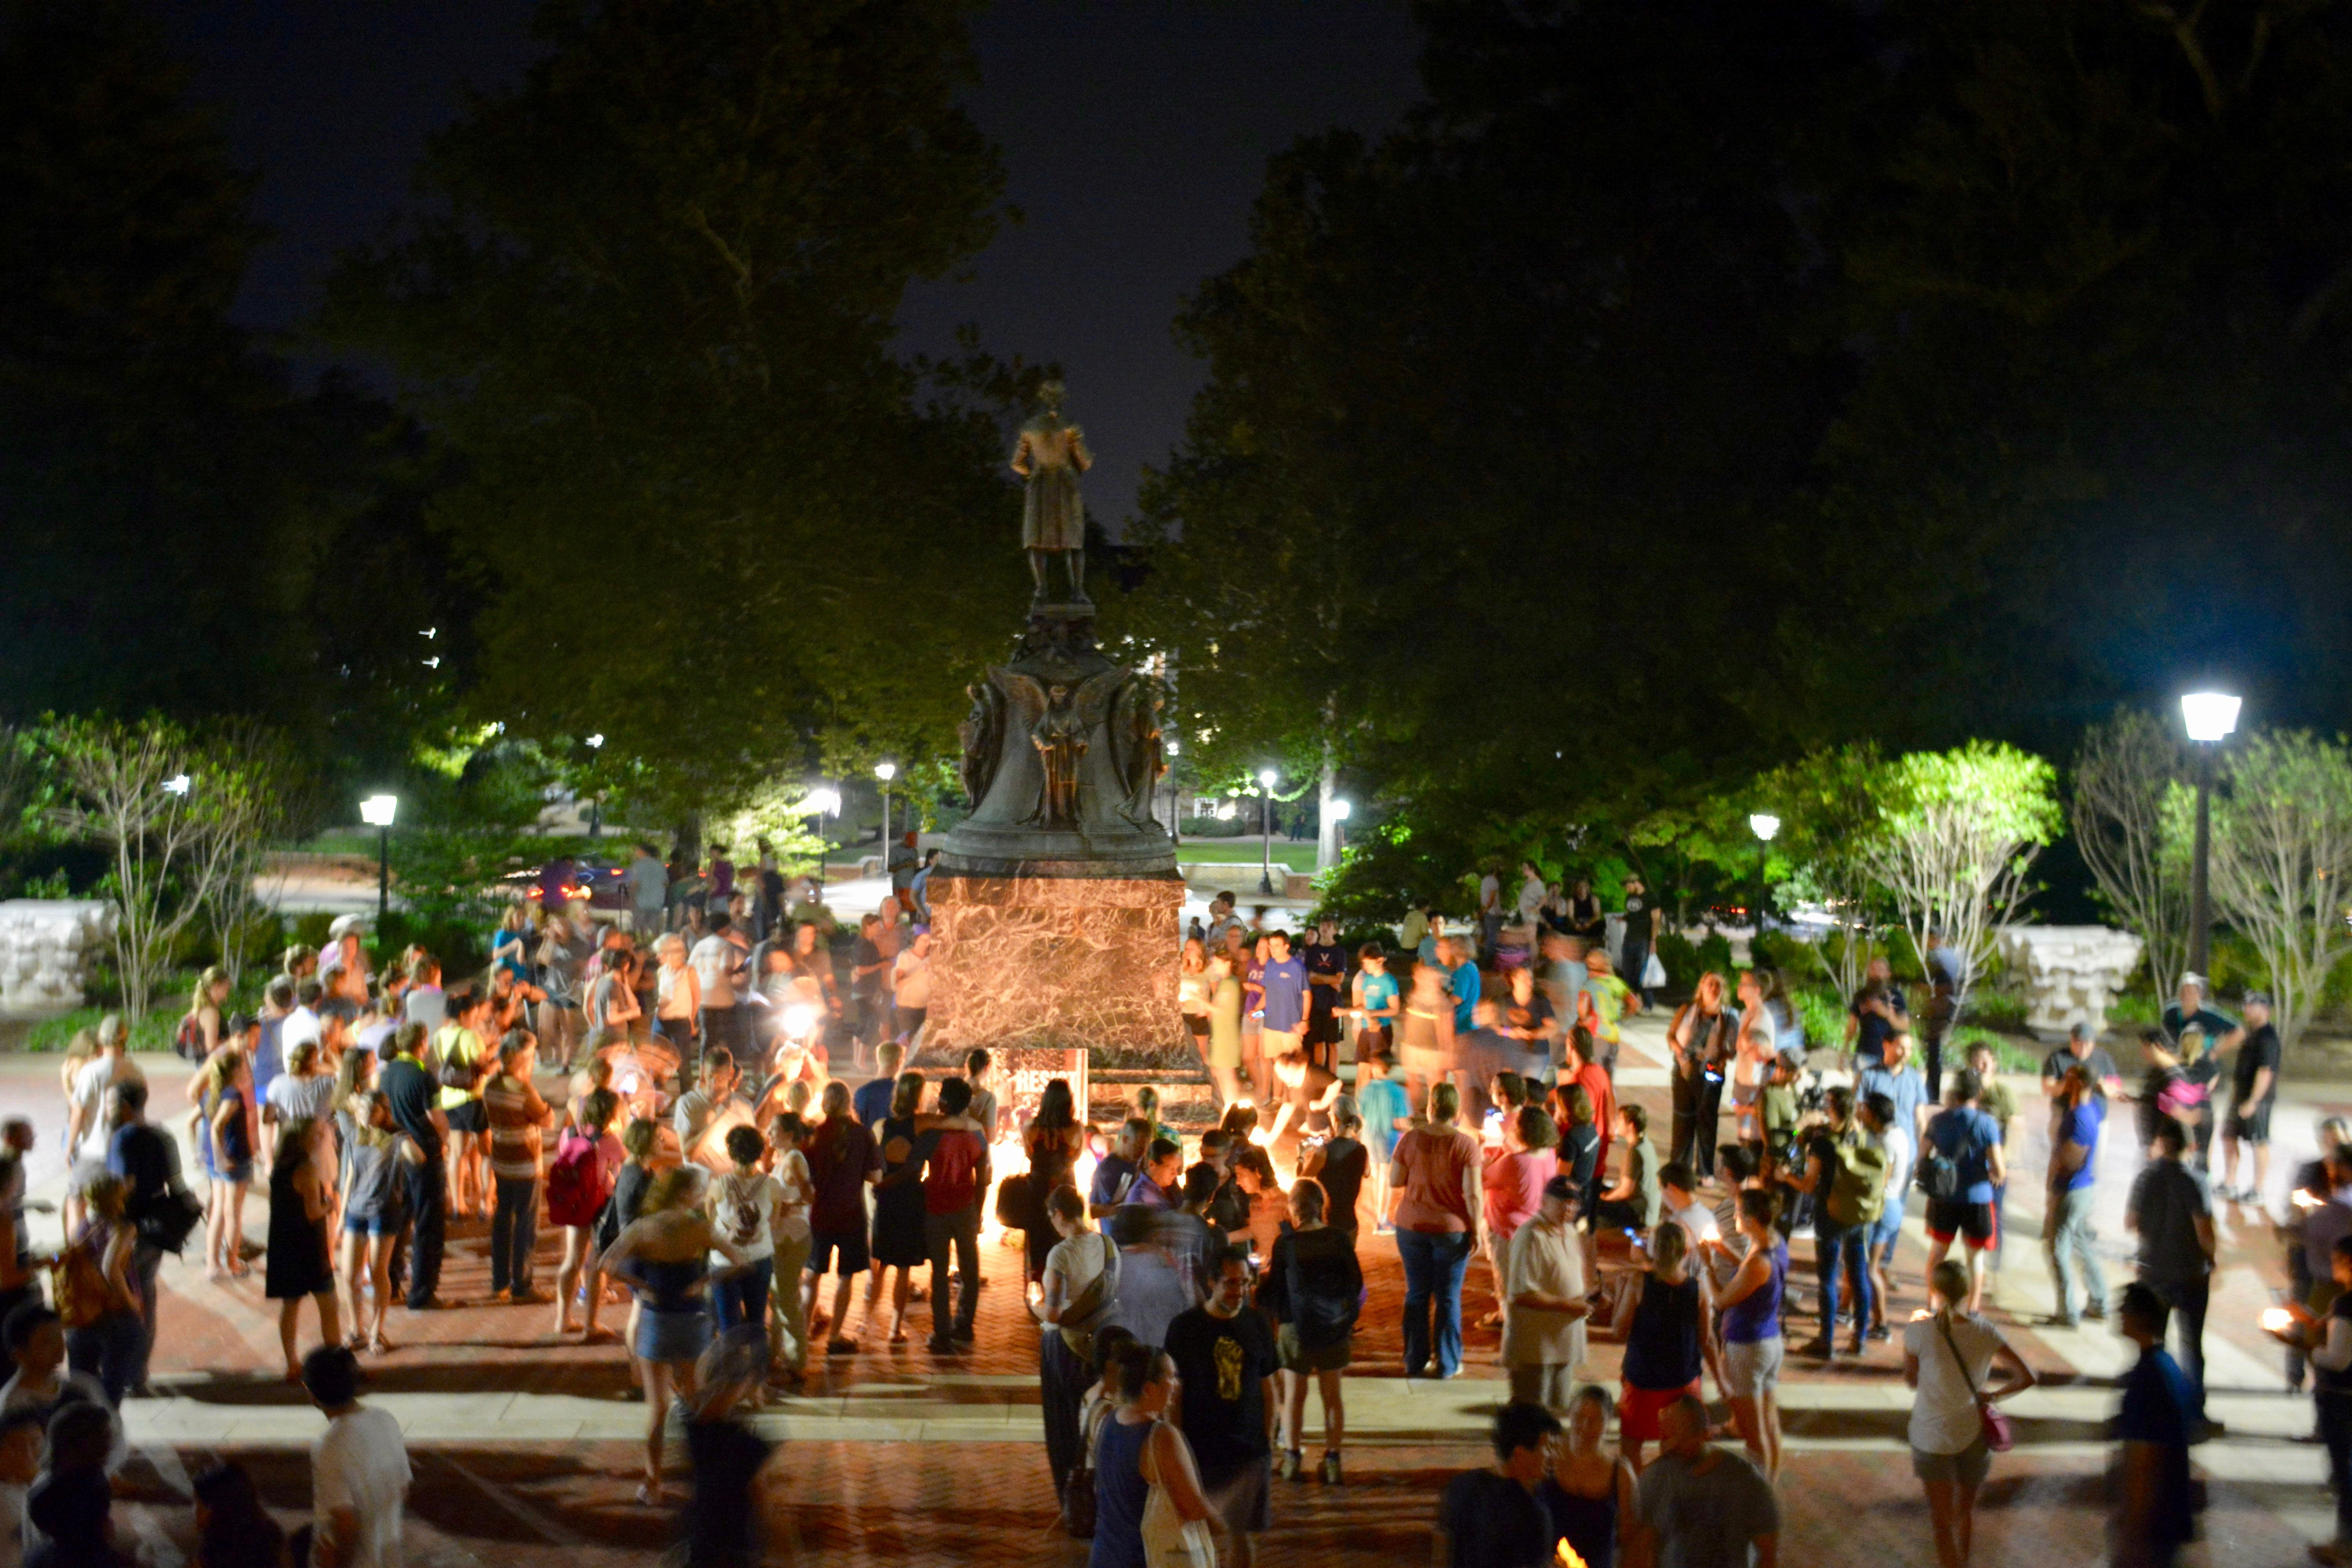 Charlottesville community members leave candles and flowers at the base of a statue of Thomas Jefferson north of University of Virginia's Rotunda at a vigil for Heather Heyer following last Saturday's protest organized by white nationalists that turned deadly in Charlottesville, Virginia, U.S. on August 16, 2017. Picture taken on August 16, 2017.   Courtesy Tim Dodson/The Cavalier Daily/Handout via REUTERS   ATTENTION EDITORS - THIS IMAGE WAS PROVIDED BY A THIRD PARTY. MANDATORY CREDIT.